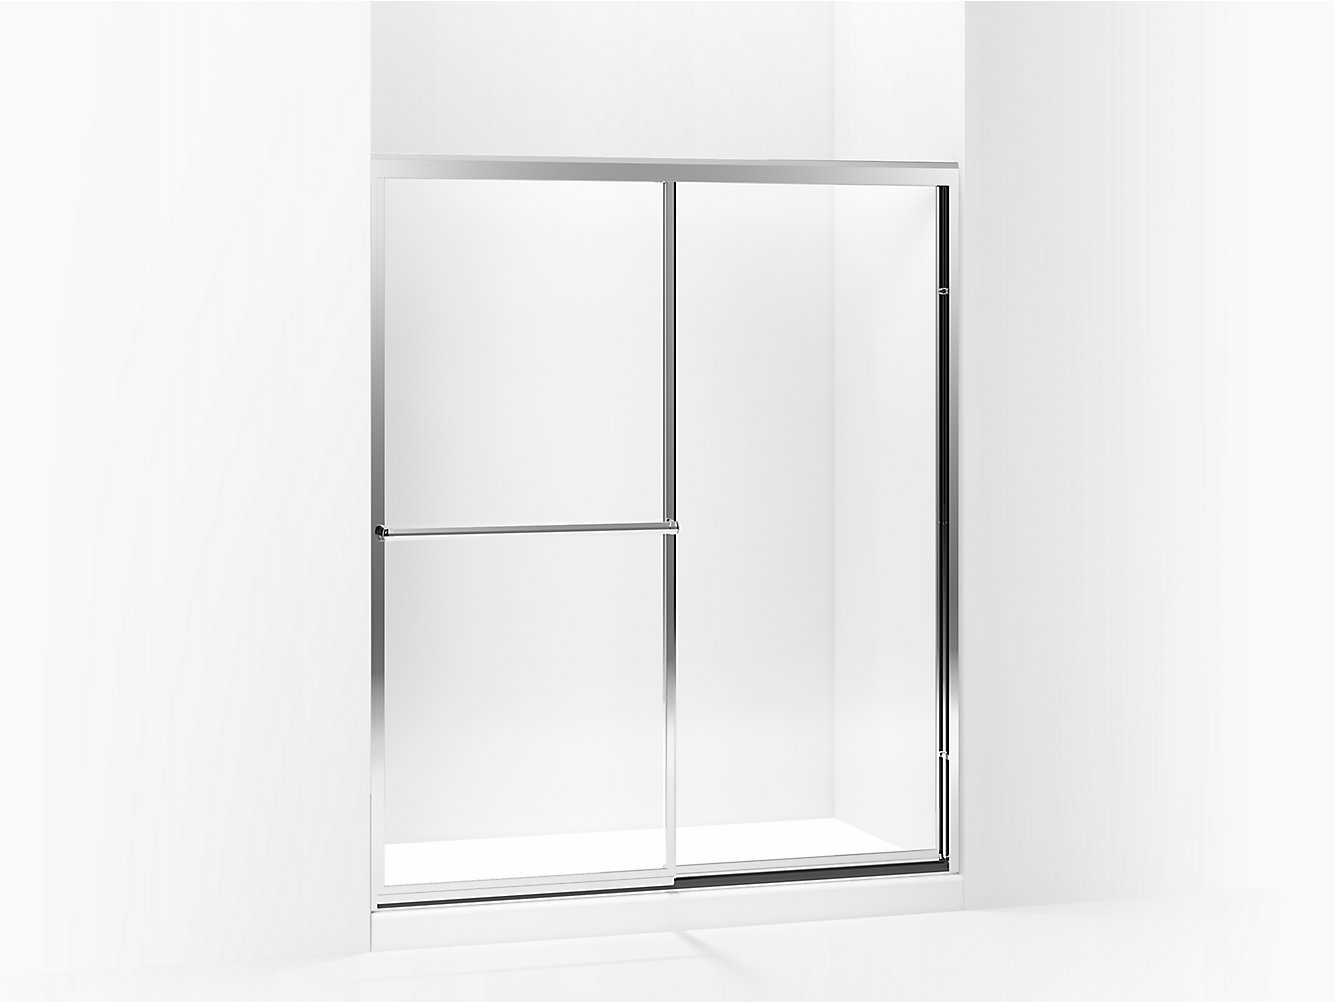 Prevail Framed Sliding Shower Door 54-3/8\